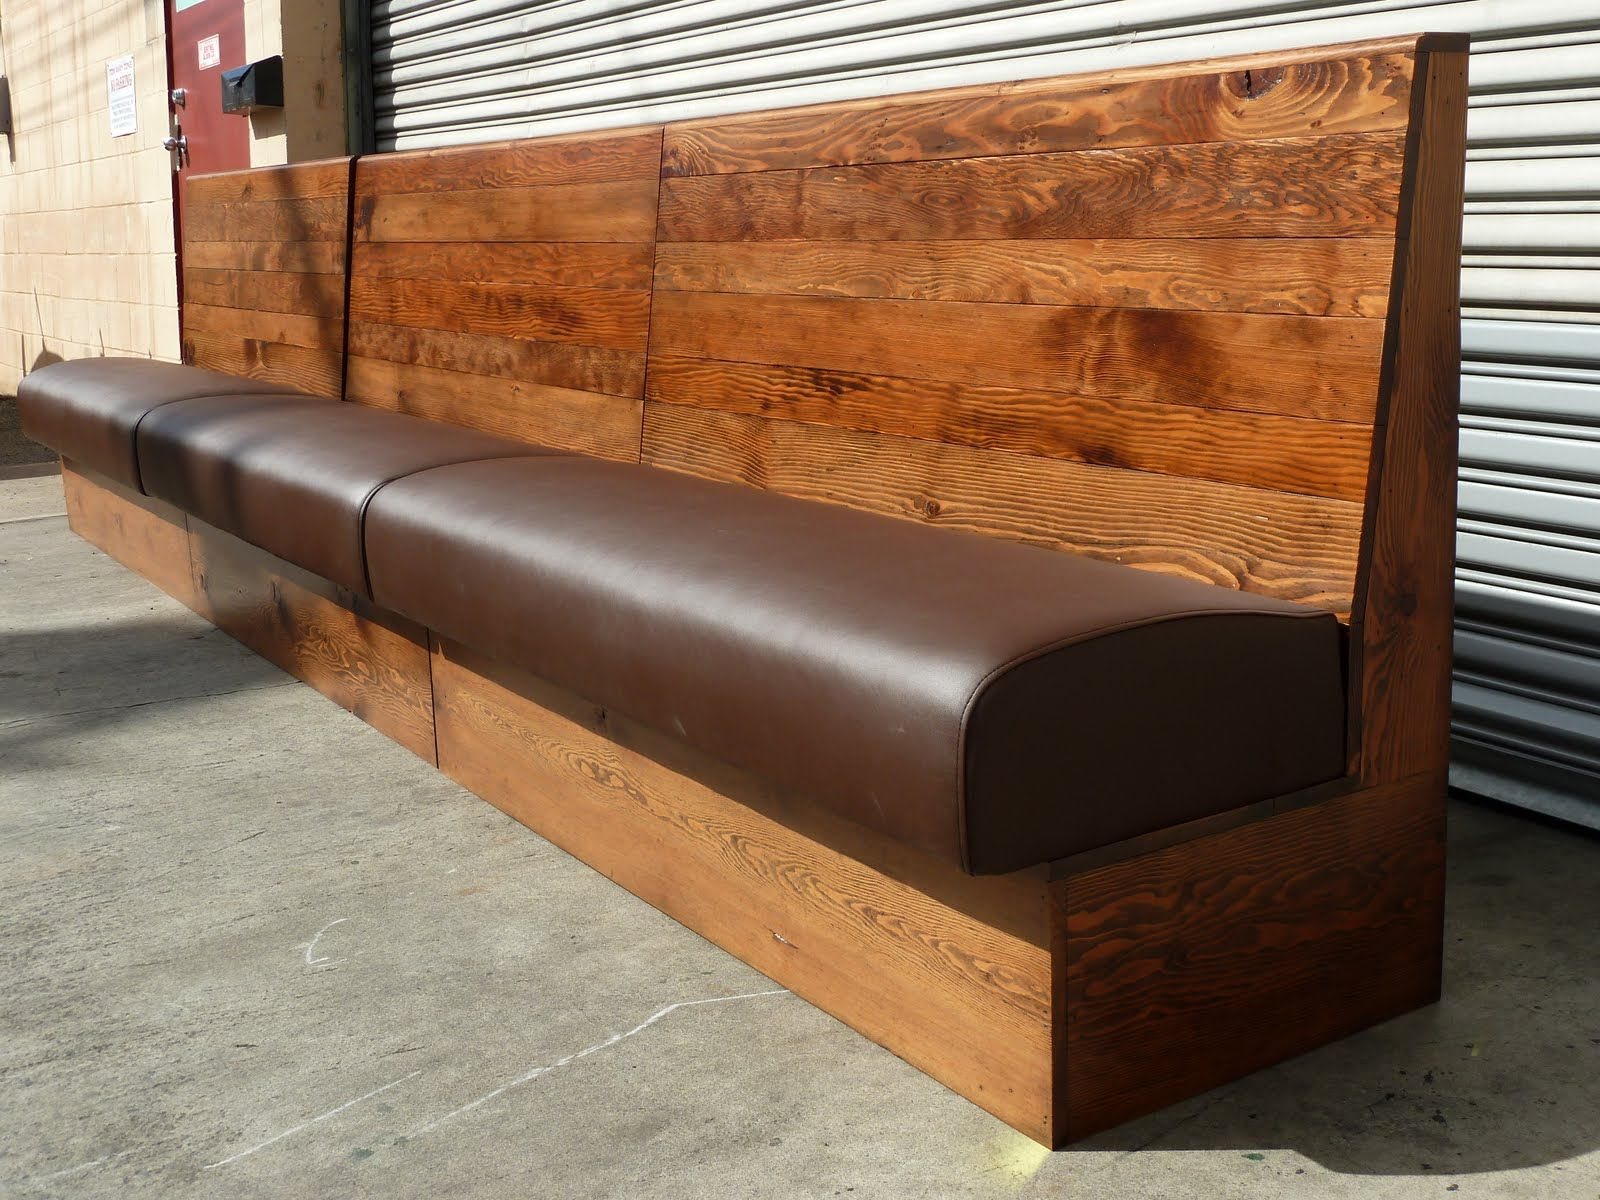 Cool banquette bench which suitable for dining room and for Banquette bench